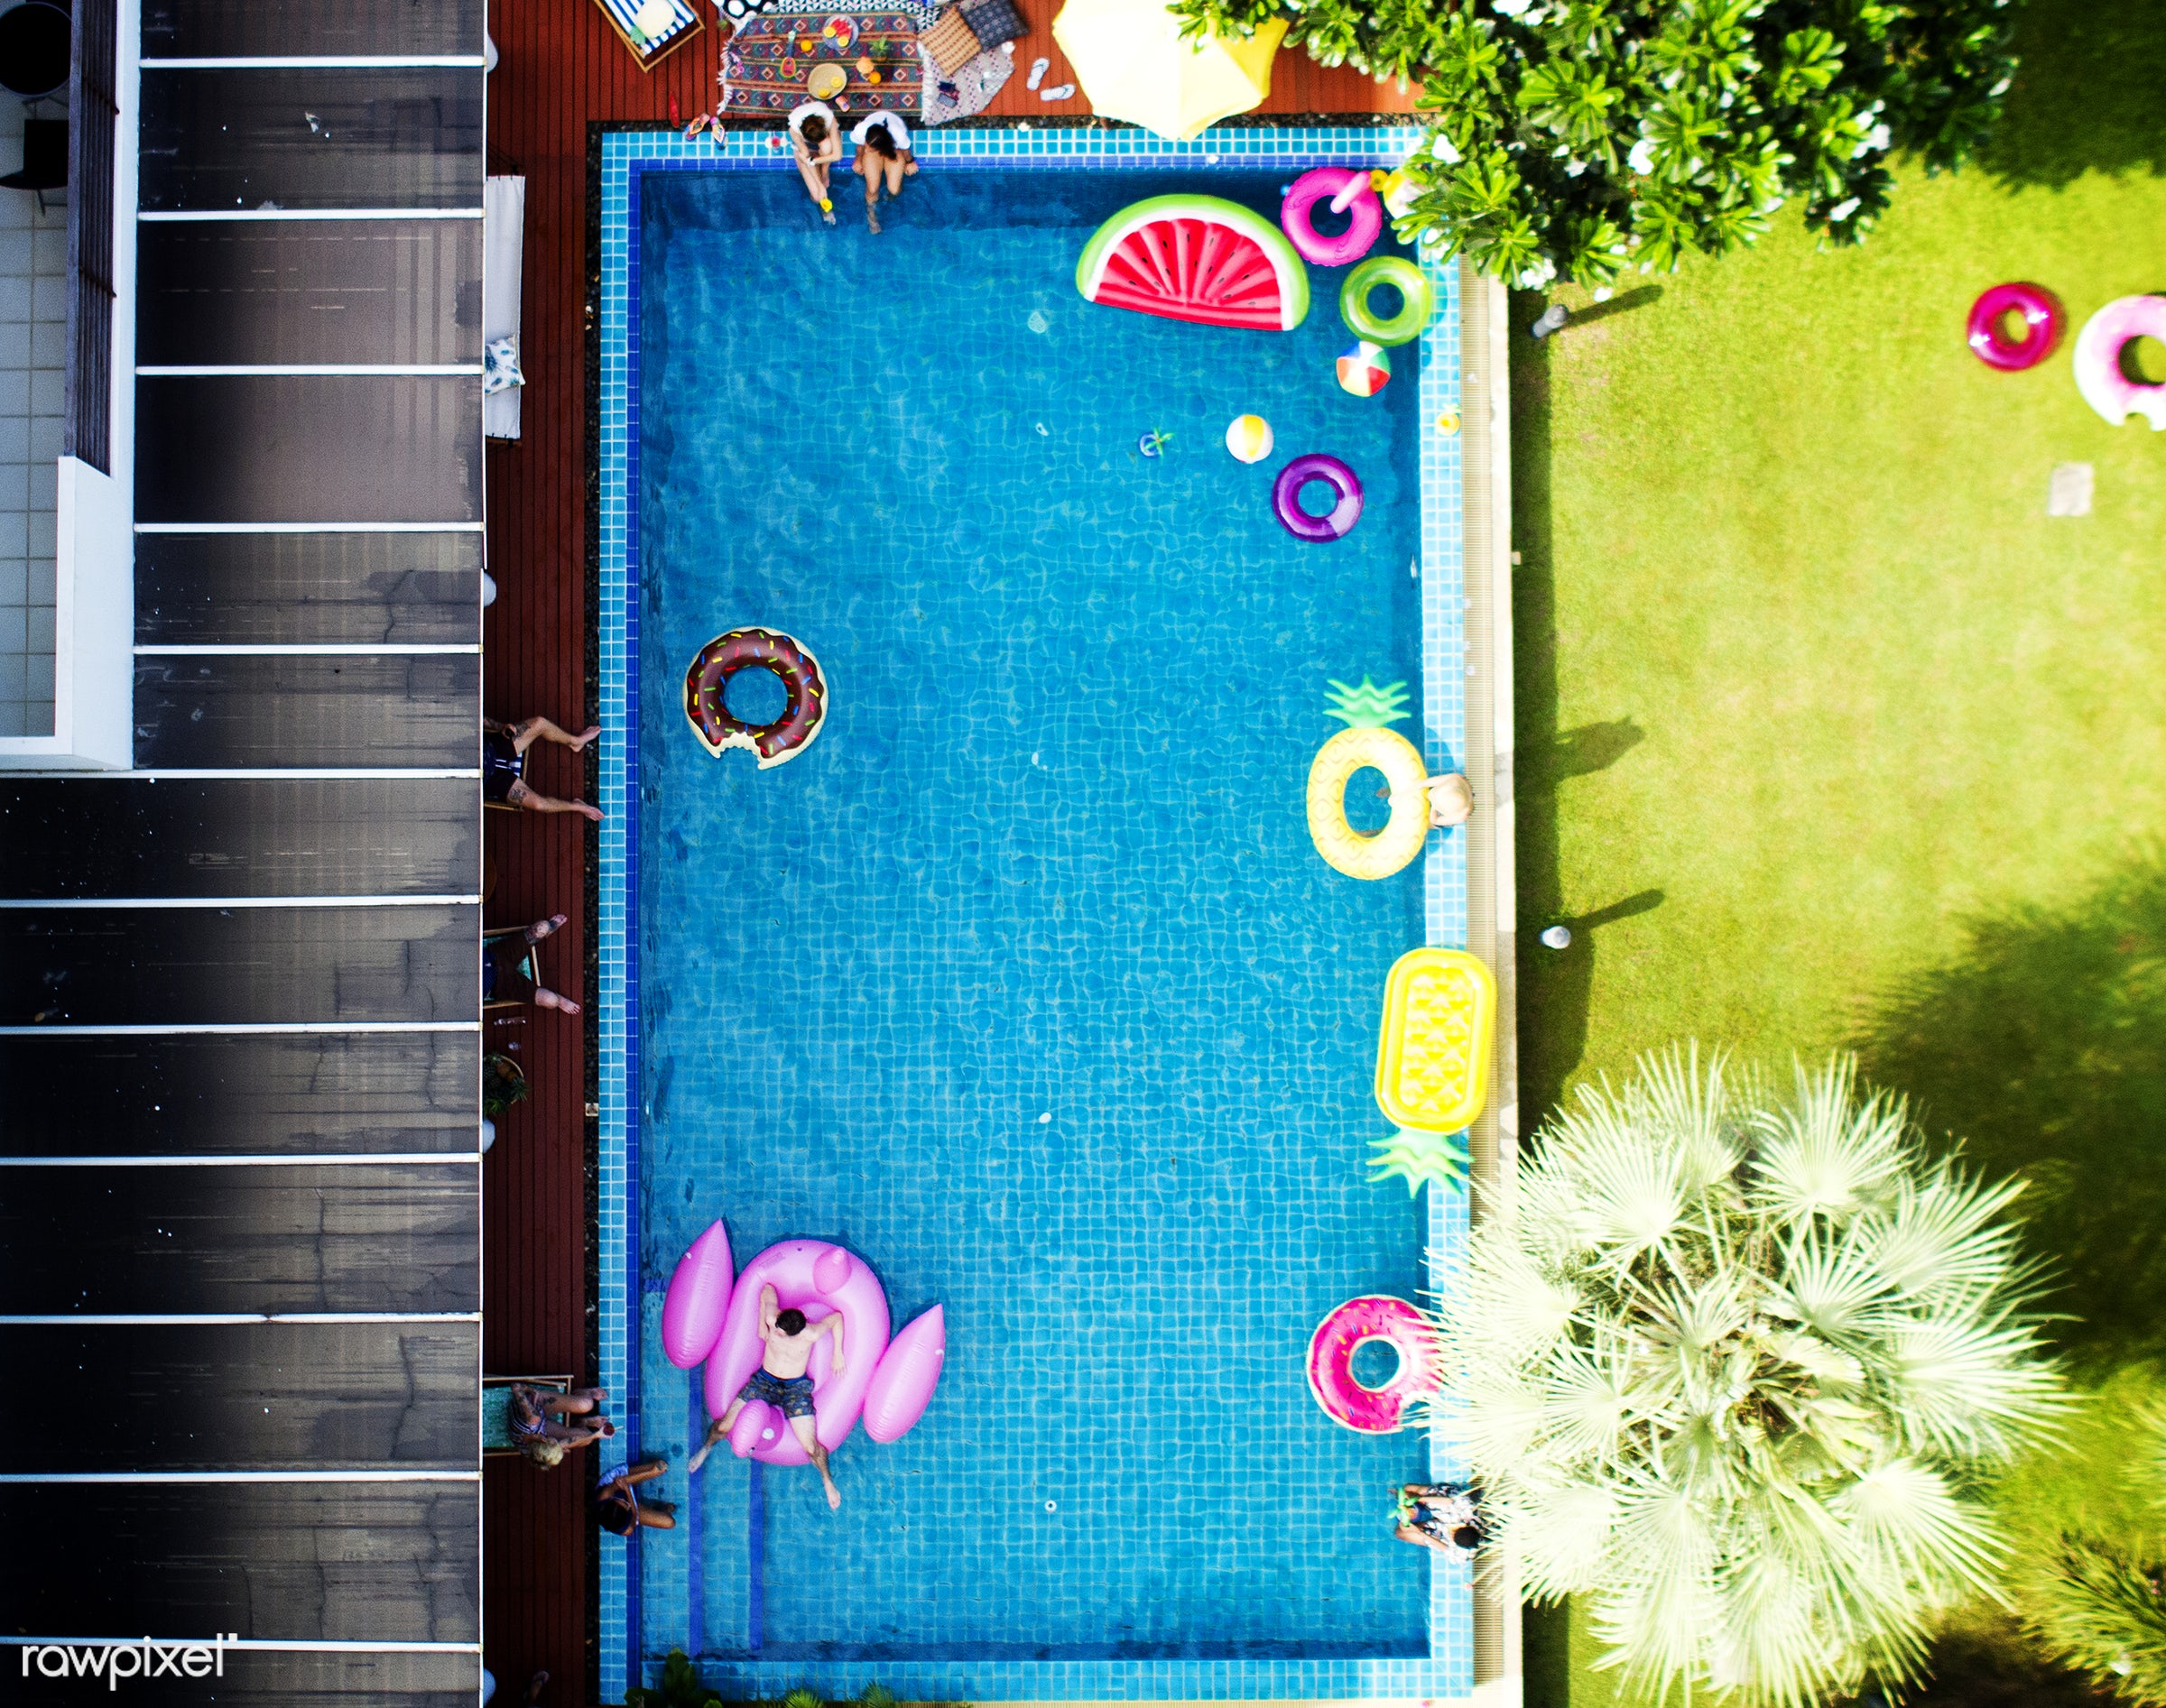 flamingo, pool, aerial, cheerful, diverse, enjoying, floating, friends, fun, group, happiness, inflatable, joyful, leisure,...